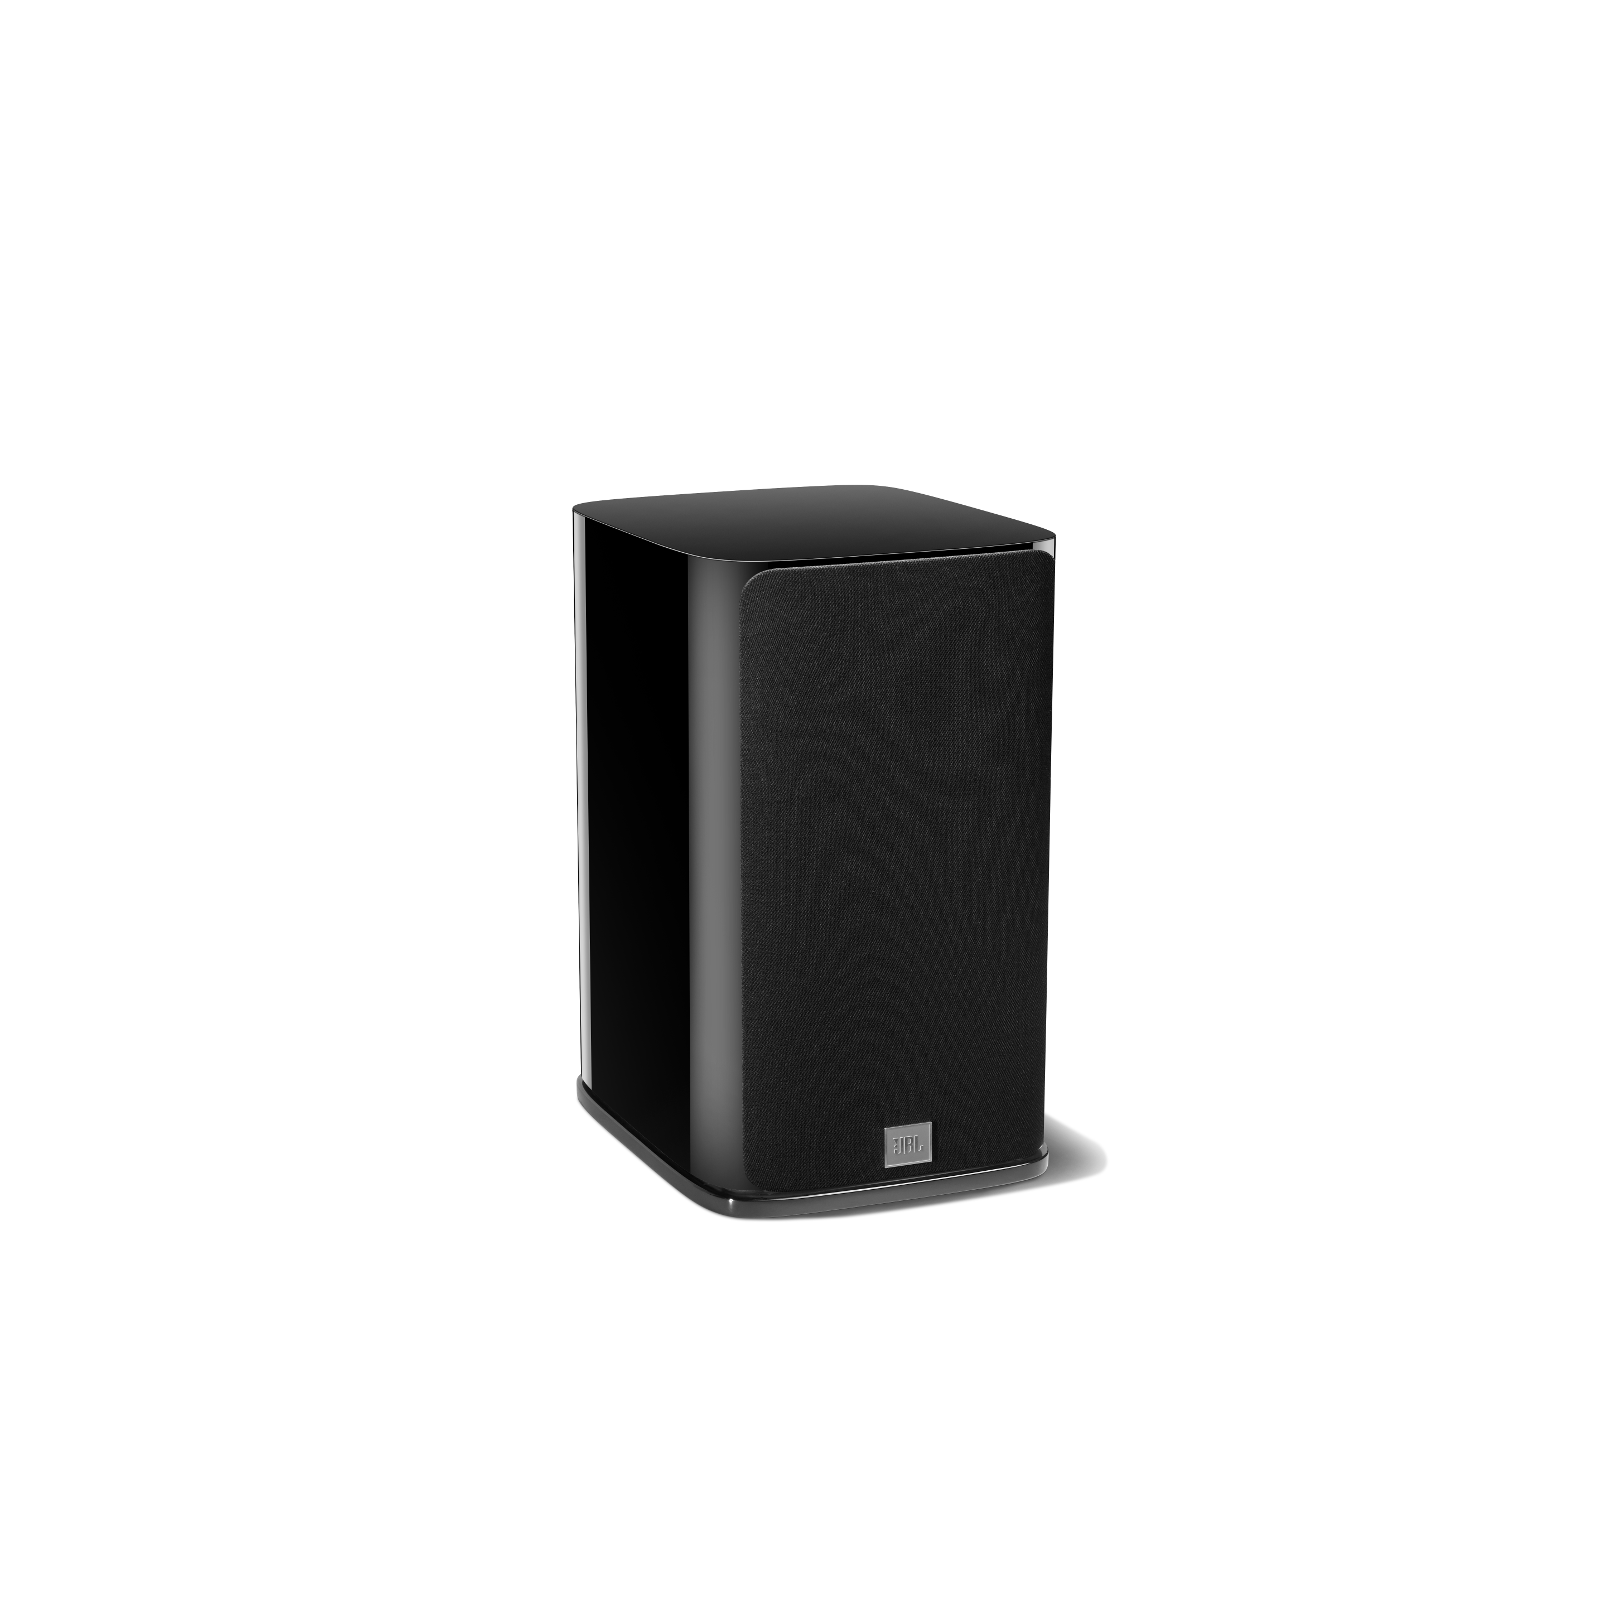 HDI-1600 - Black Gloss - 2-way 6.5-inch (165mm) Bookshelf Loudspeaker - Front